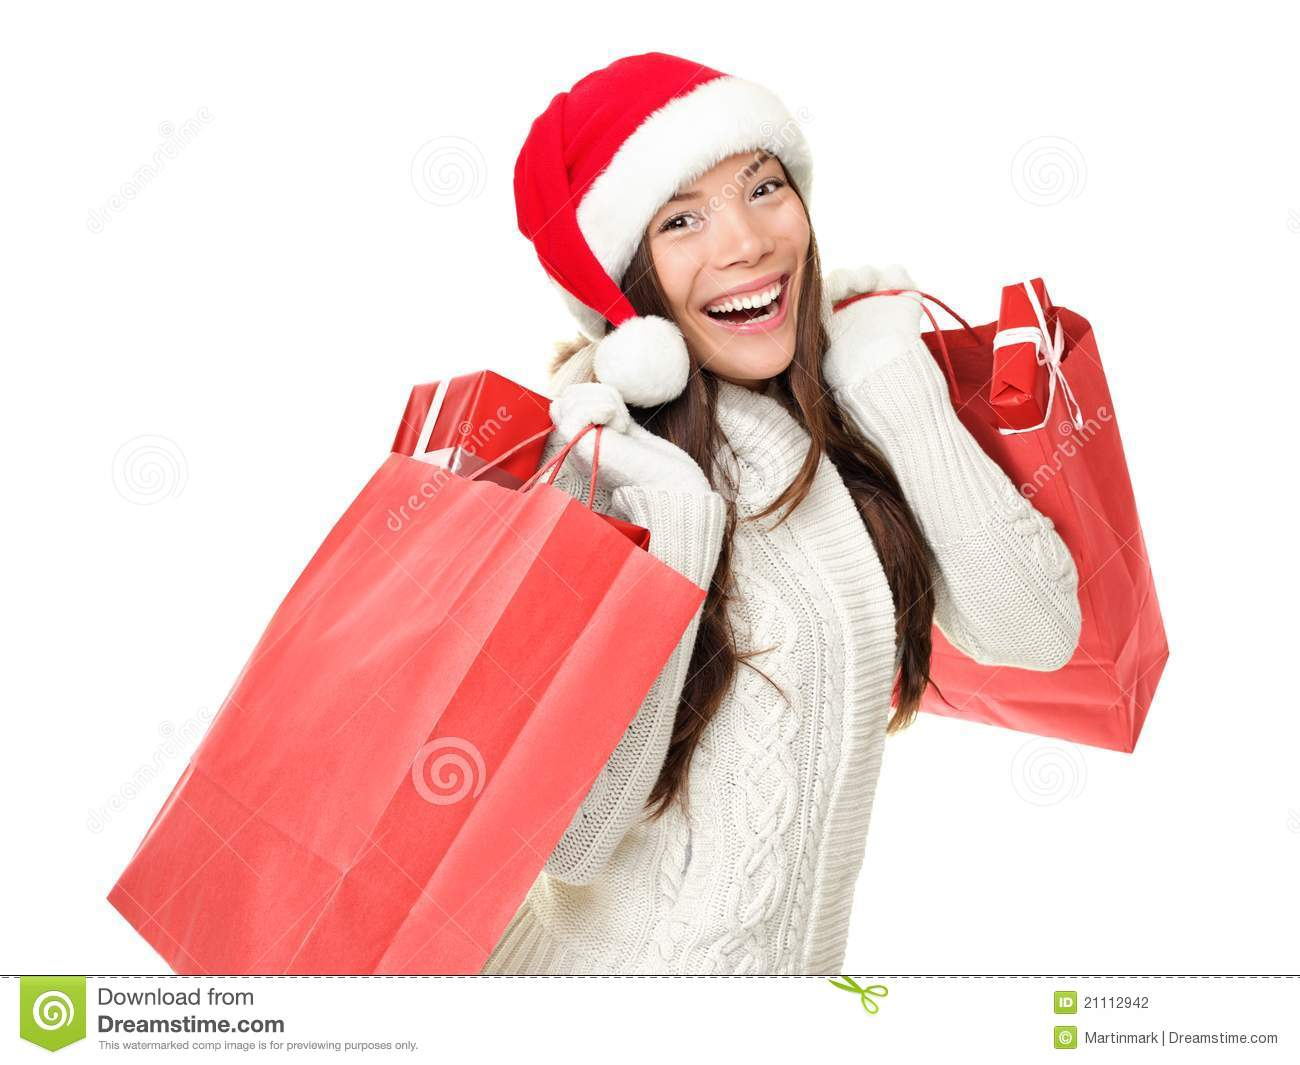 282bec21573ef Christmas shopping woman holding shopping bags with gifts. Happy and  smiling wearing red santa hat isolated on white background.